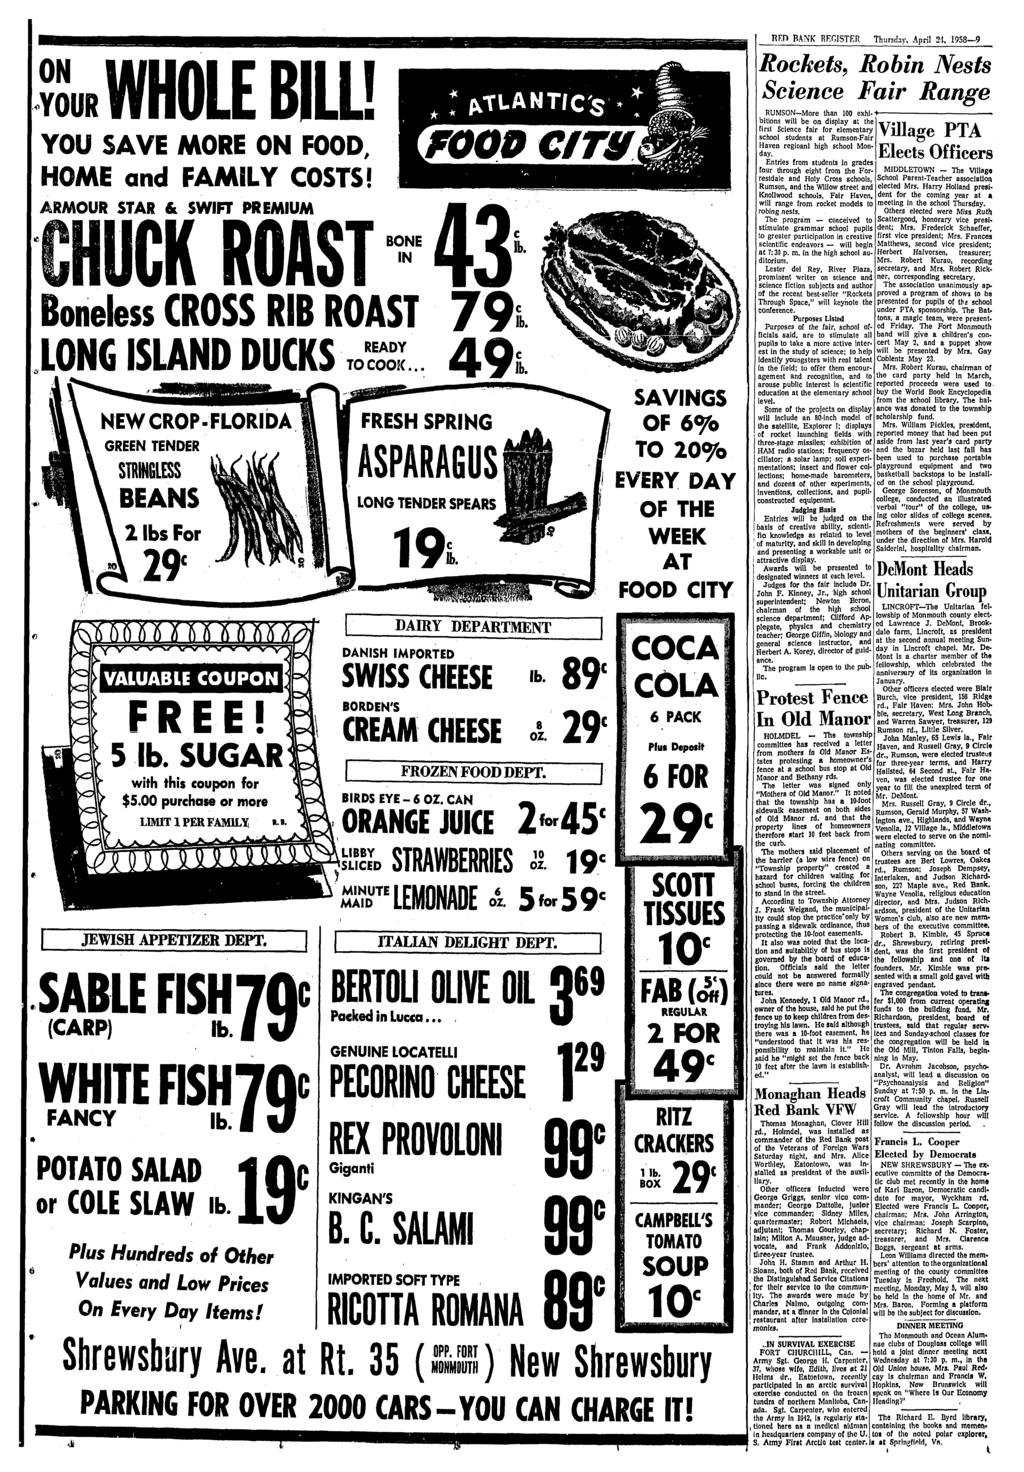 WHOLE BILL! YOU SAVE MORE ON FOOD, HOME and FAMILY COSTS! ARMOUR STAR & SWIFT PREMIUM Boneless CROSS RIB ROAST 7 9 LONG ISLAND DUCKS READY TO COOK.